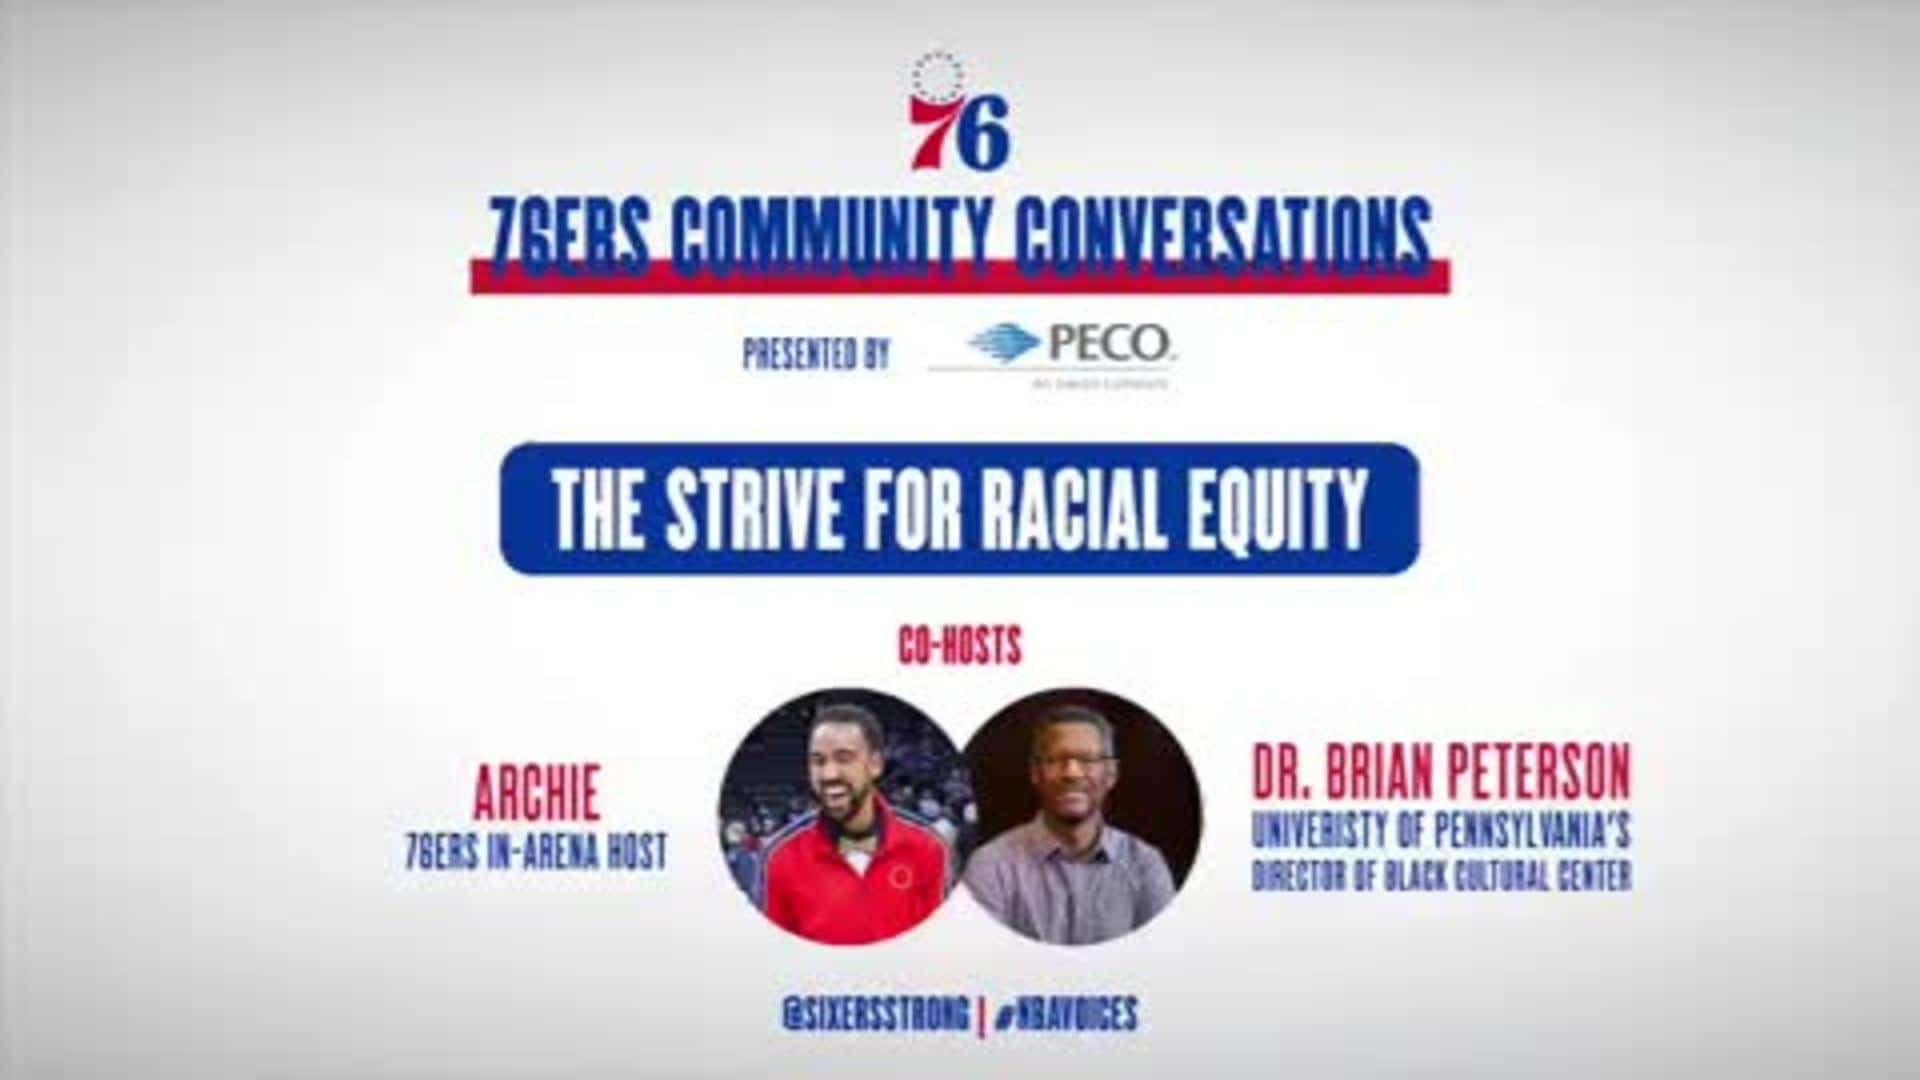 76ers Community Conversations | The Strive For Racial Equity